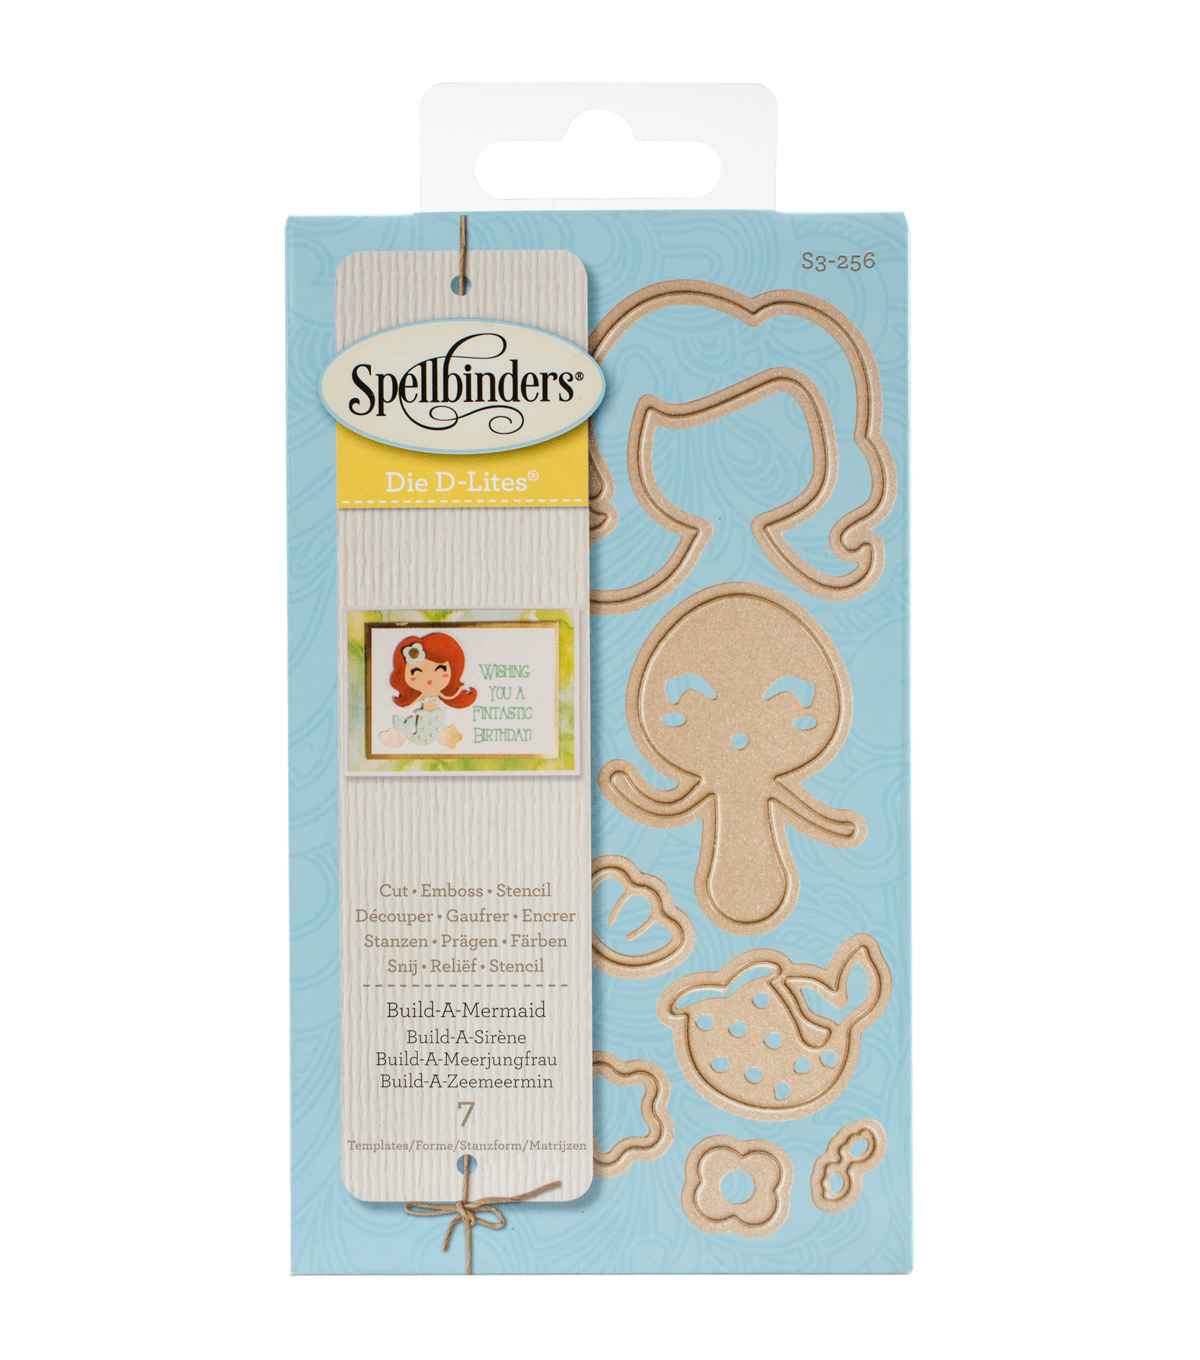 Spellbinders® Shapeabilities® Die D-Lites Die-Build-A-Mermaid